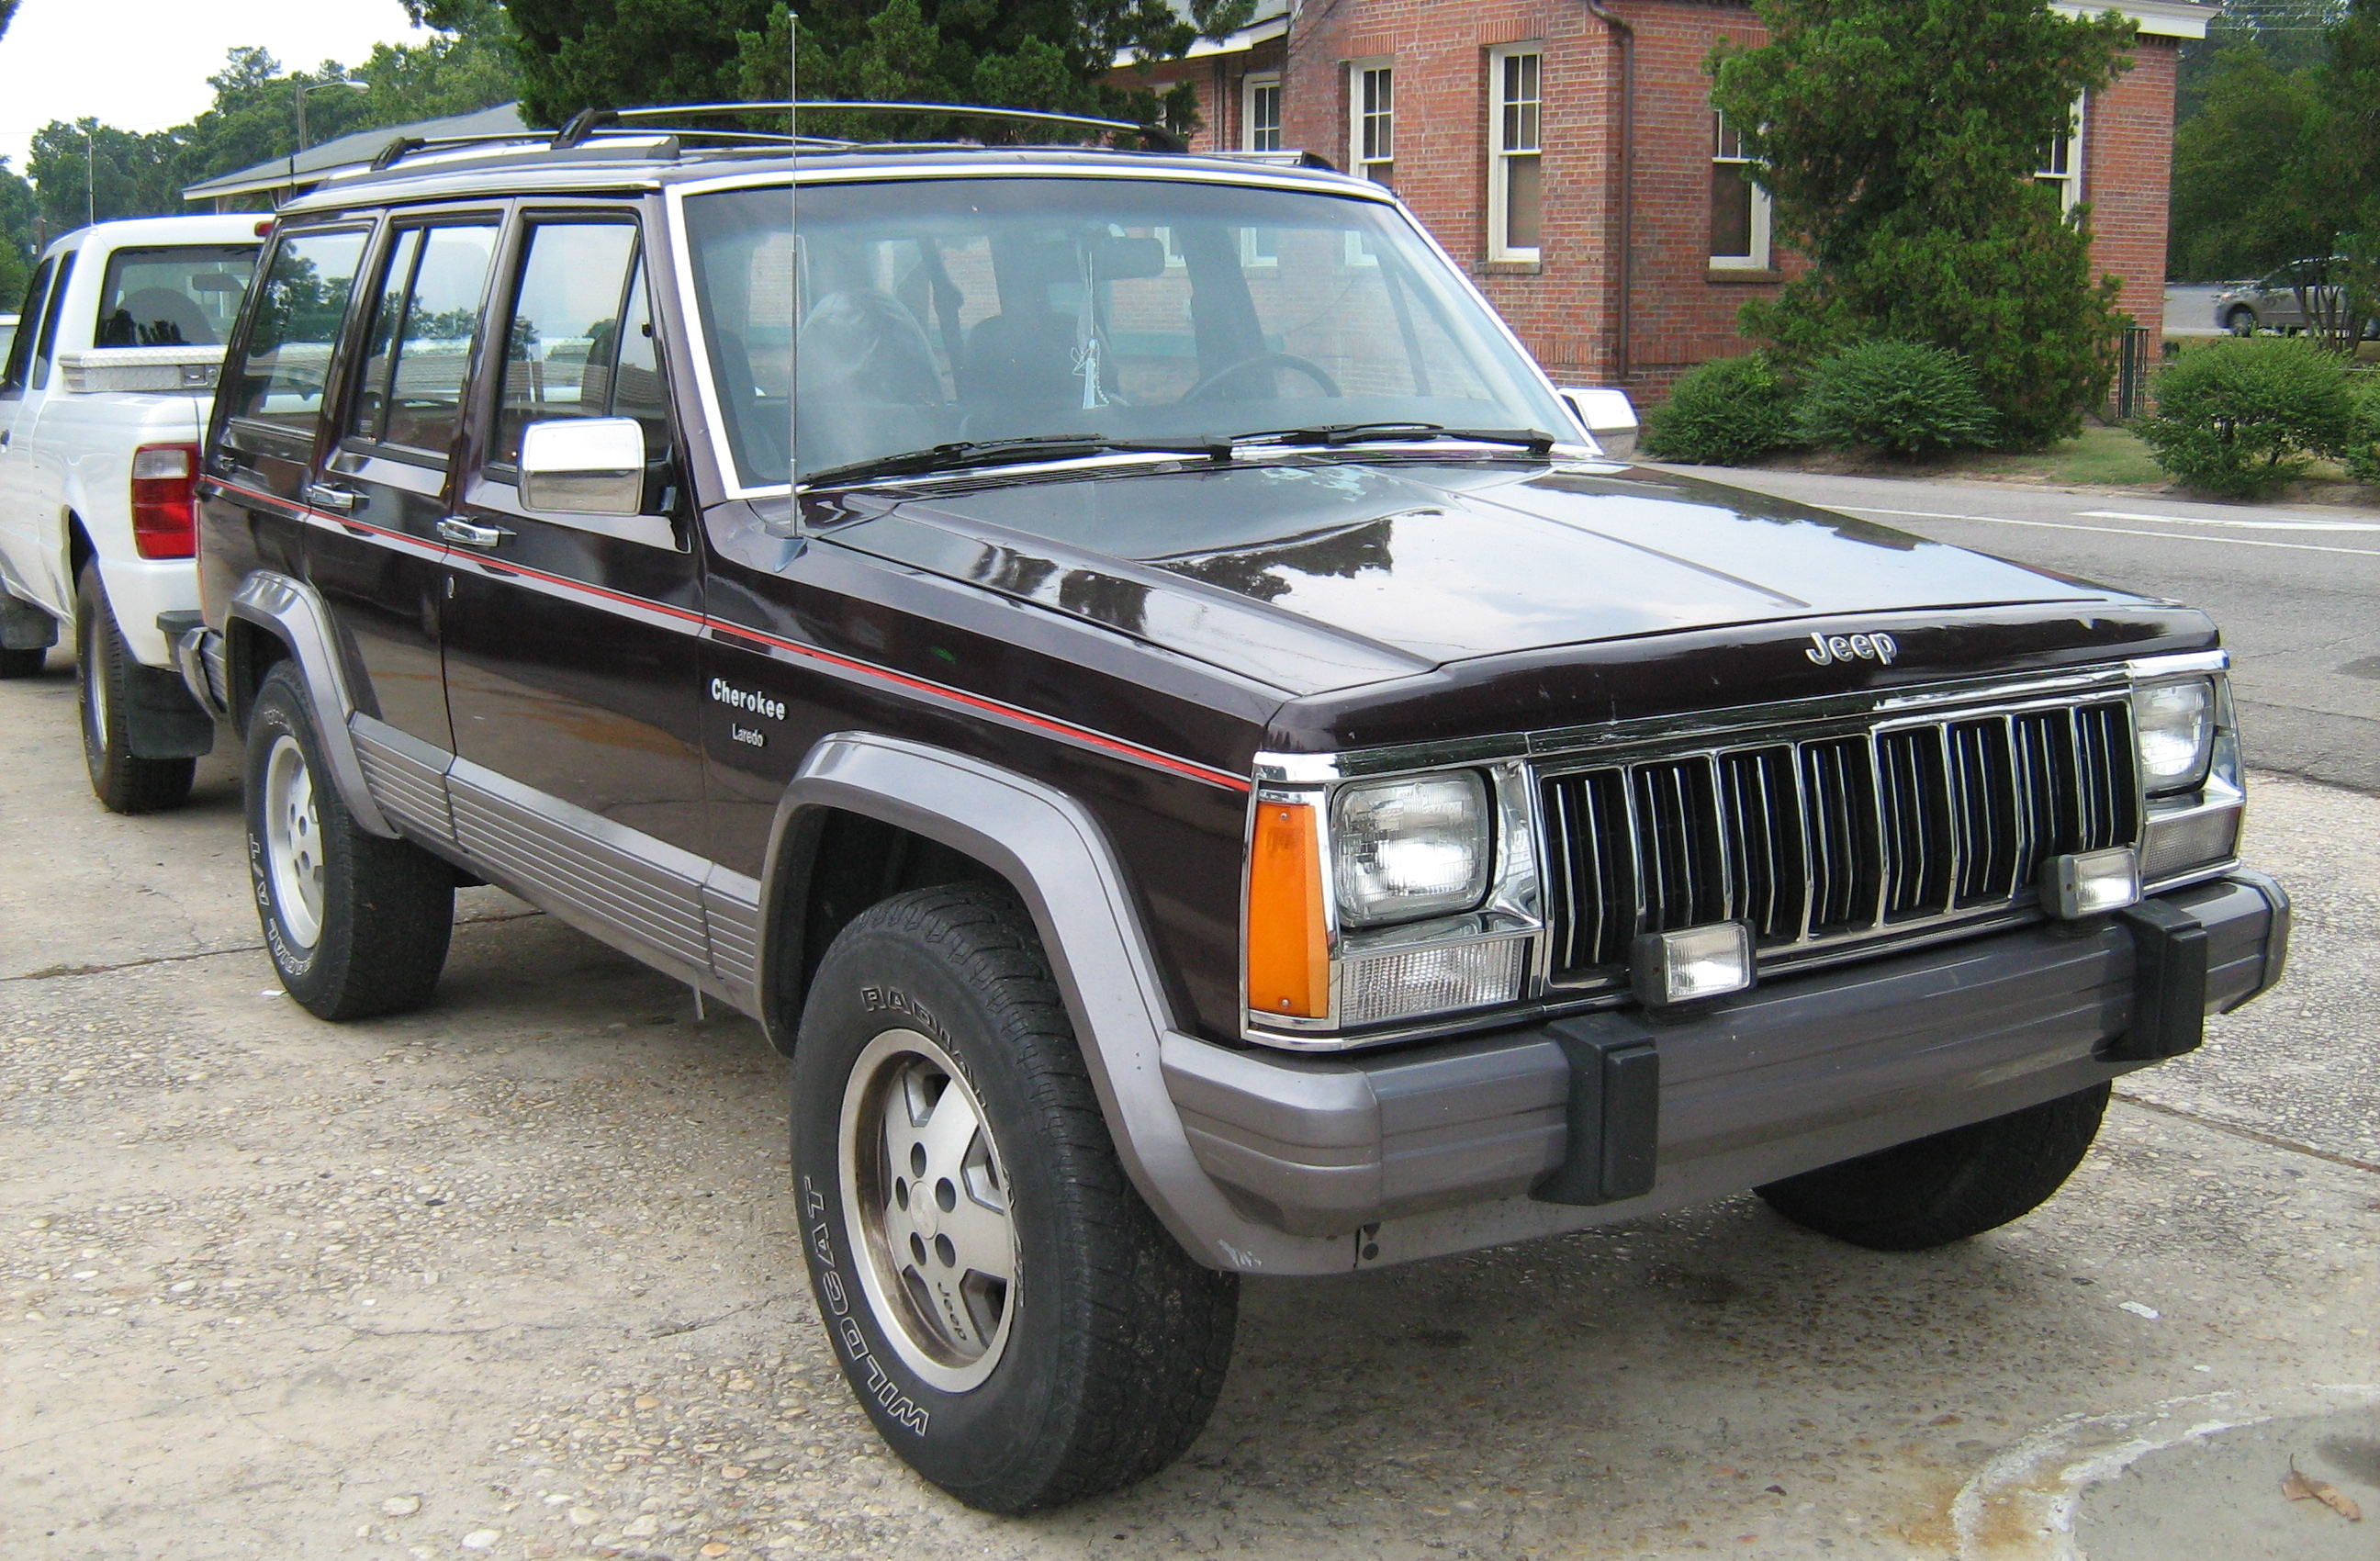 1992 Jeep Cherokee Specs | Car Reviews 2018